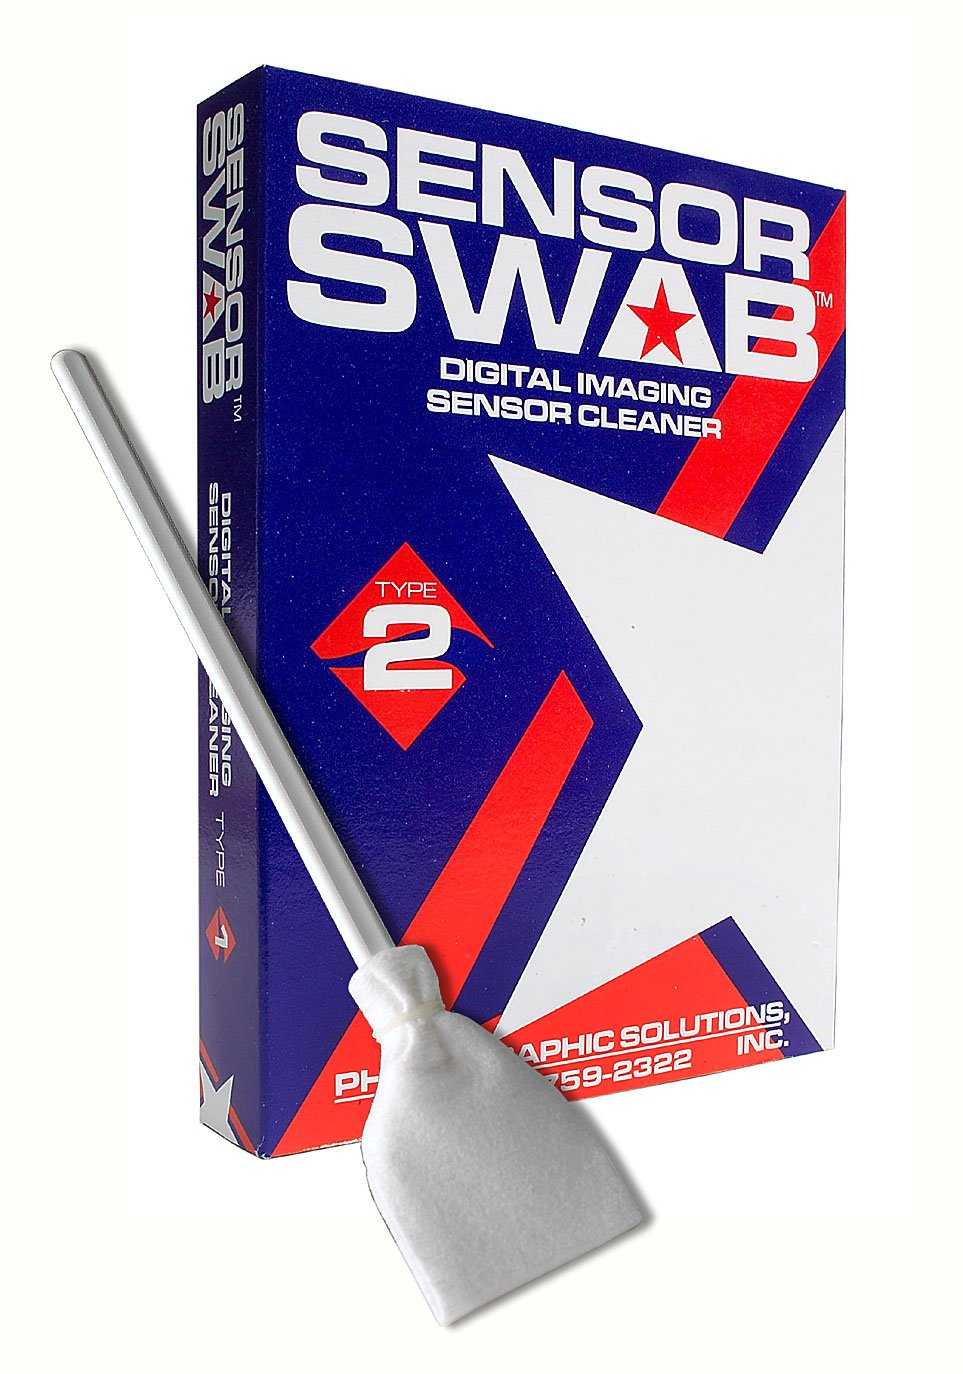 Sensor Swabs Type 2 (Box of 12) by Photographic Solutions